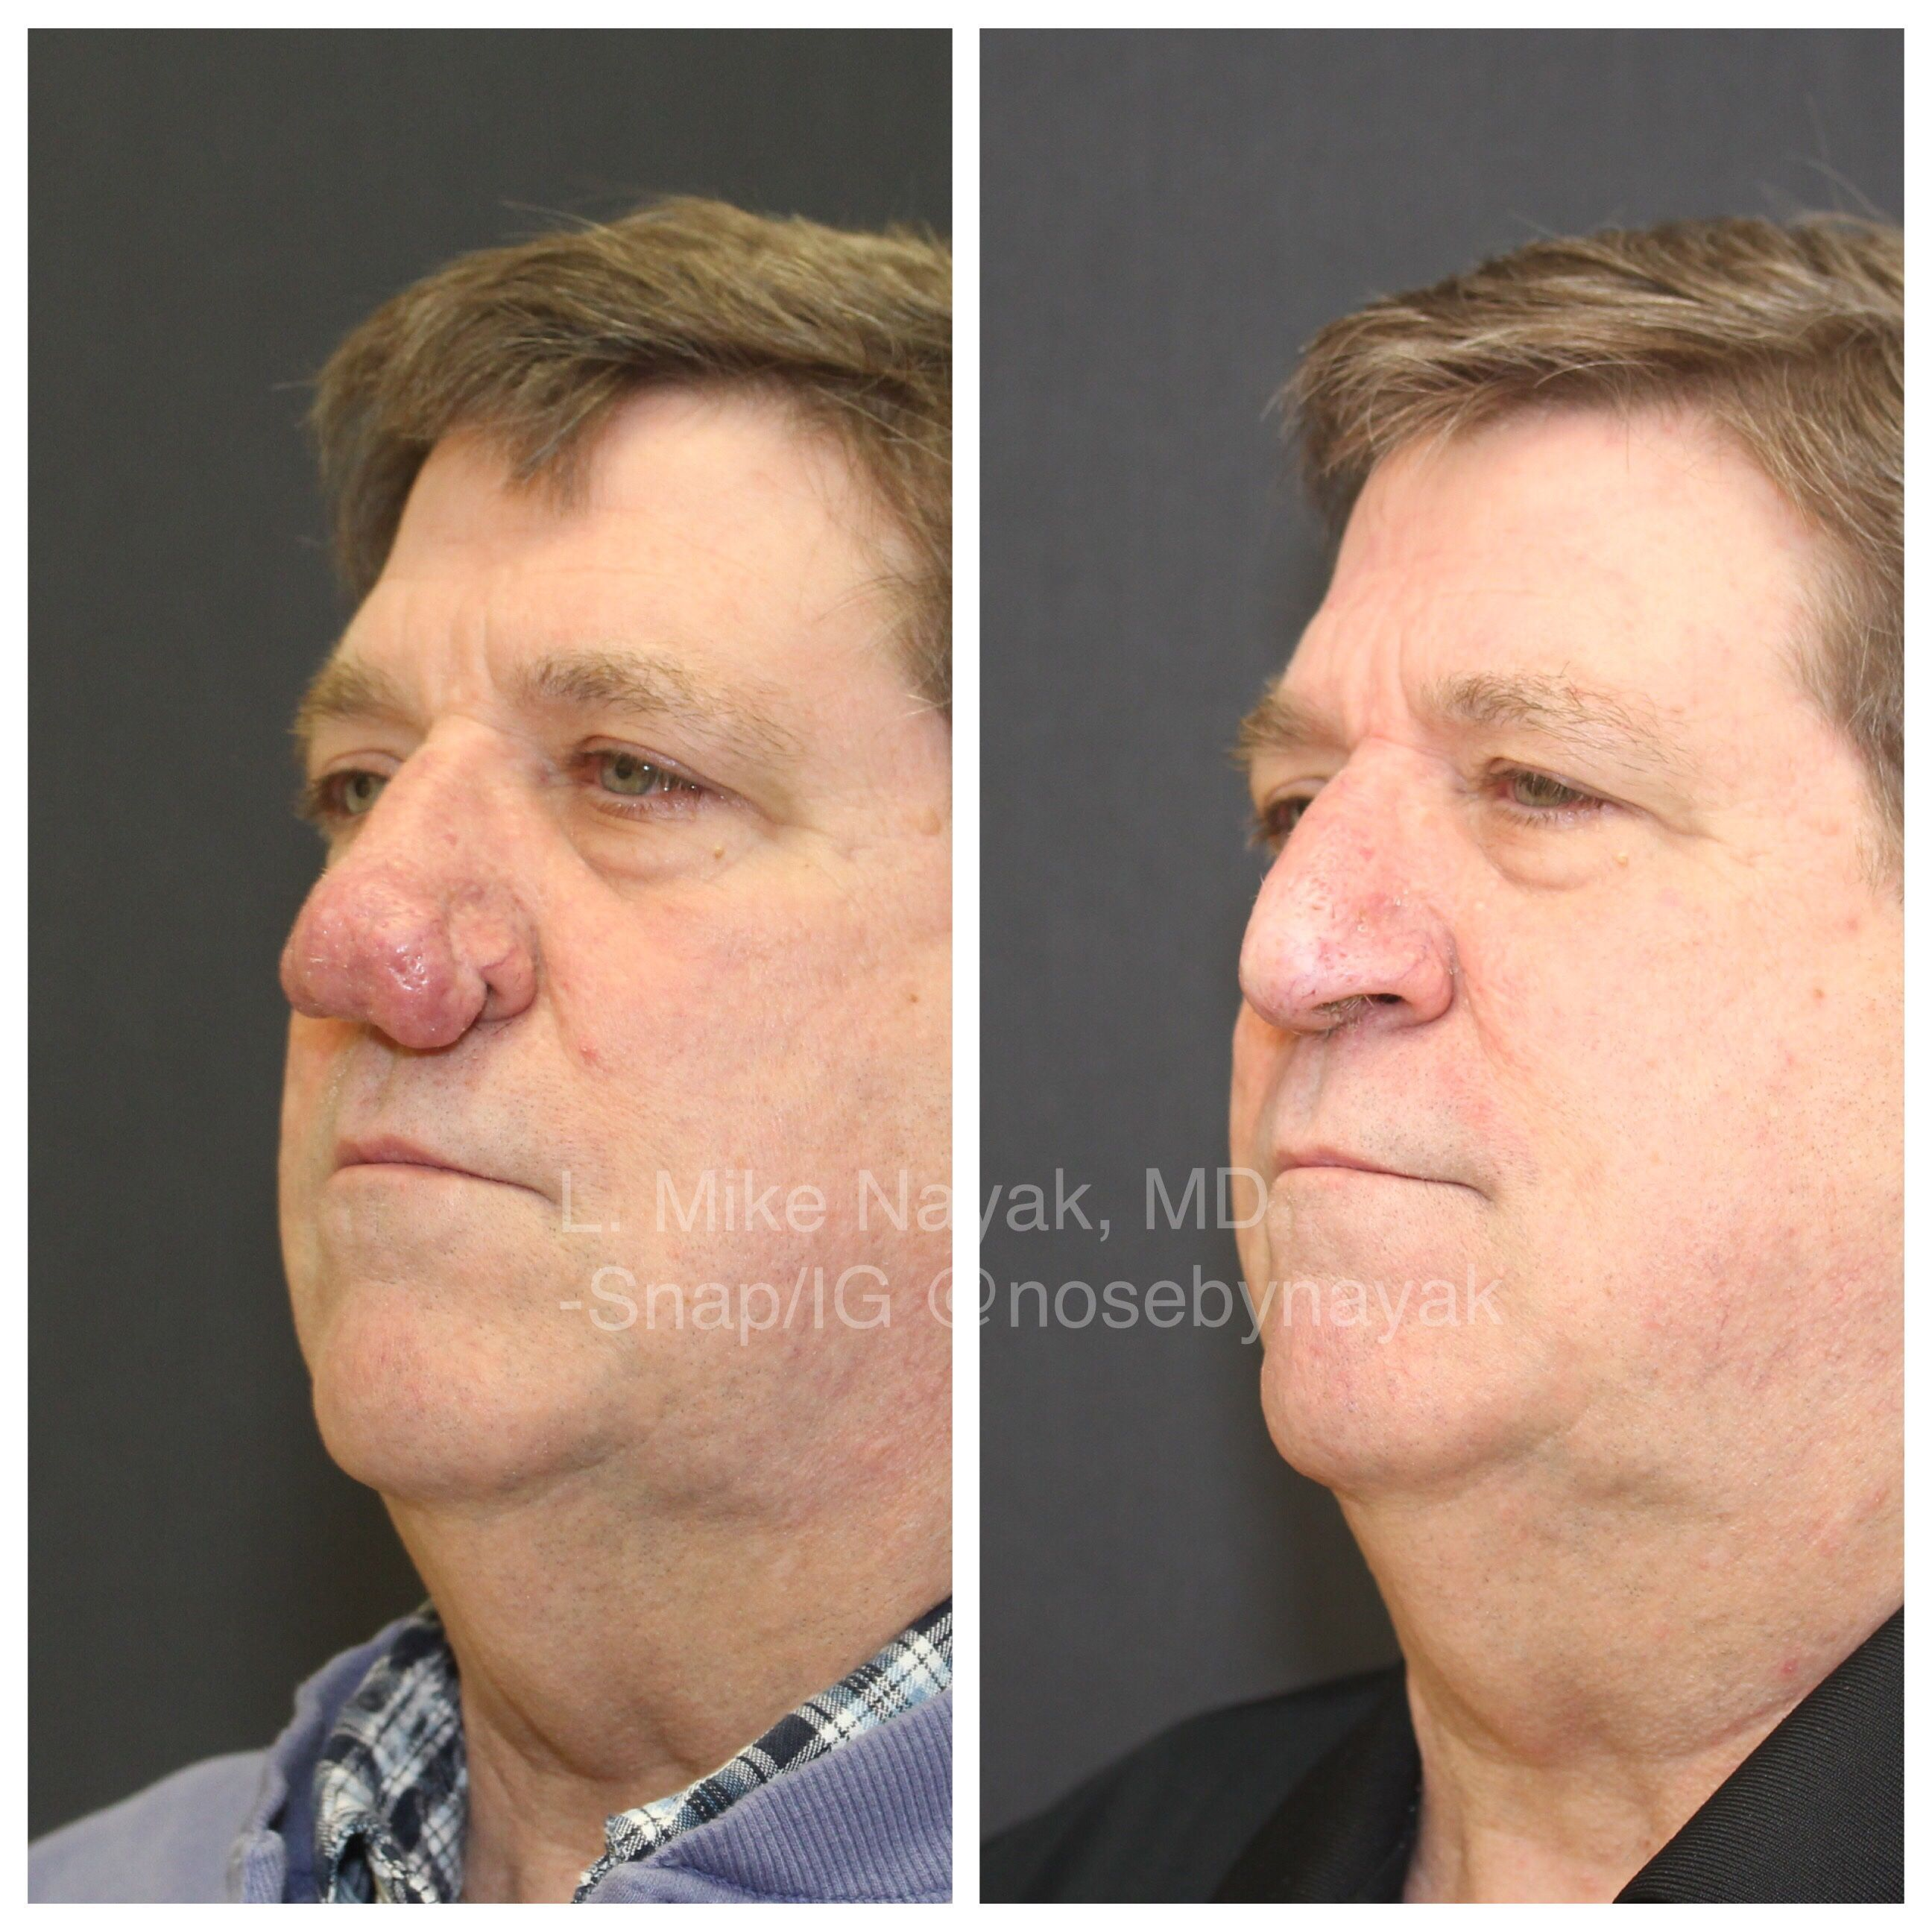 Rhinophyma Before After Bulbous Nose Oil Gland Plastic Surgery